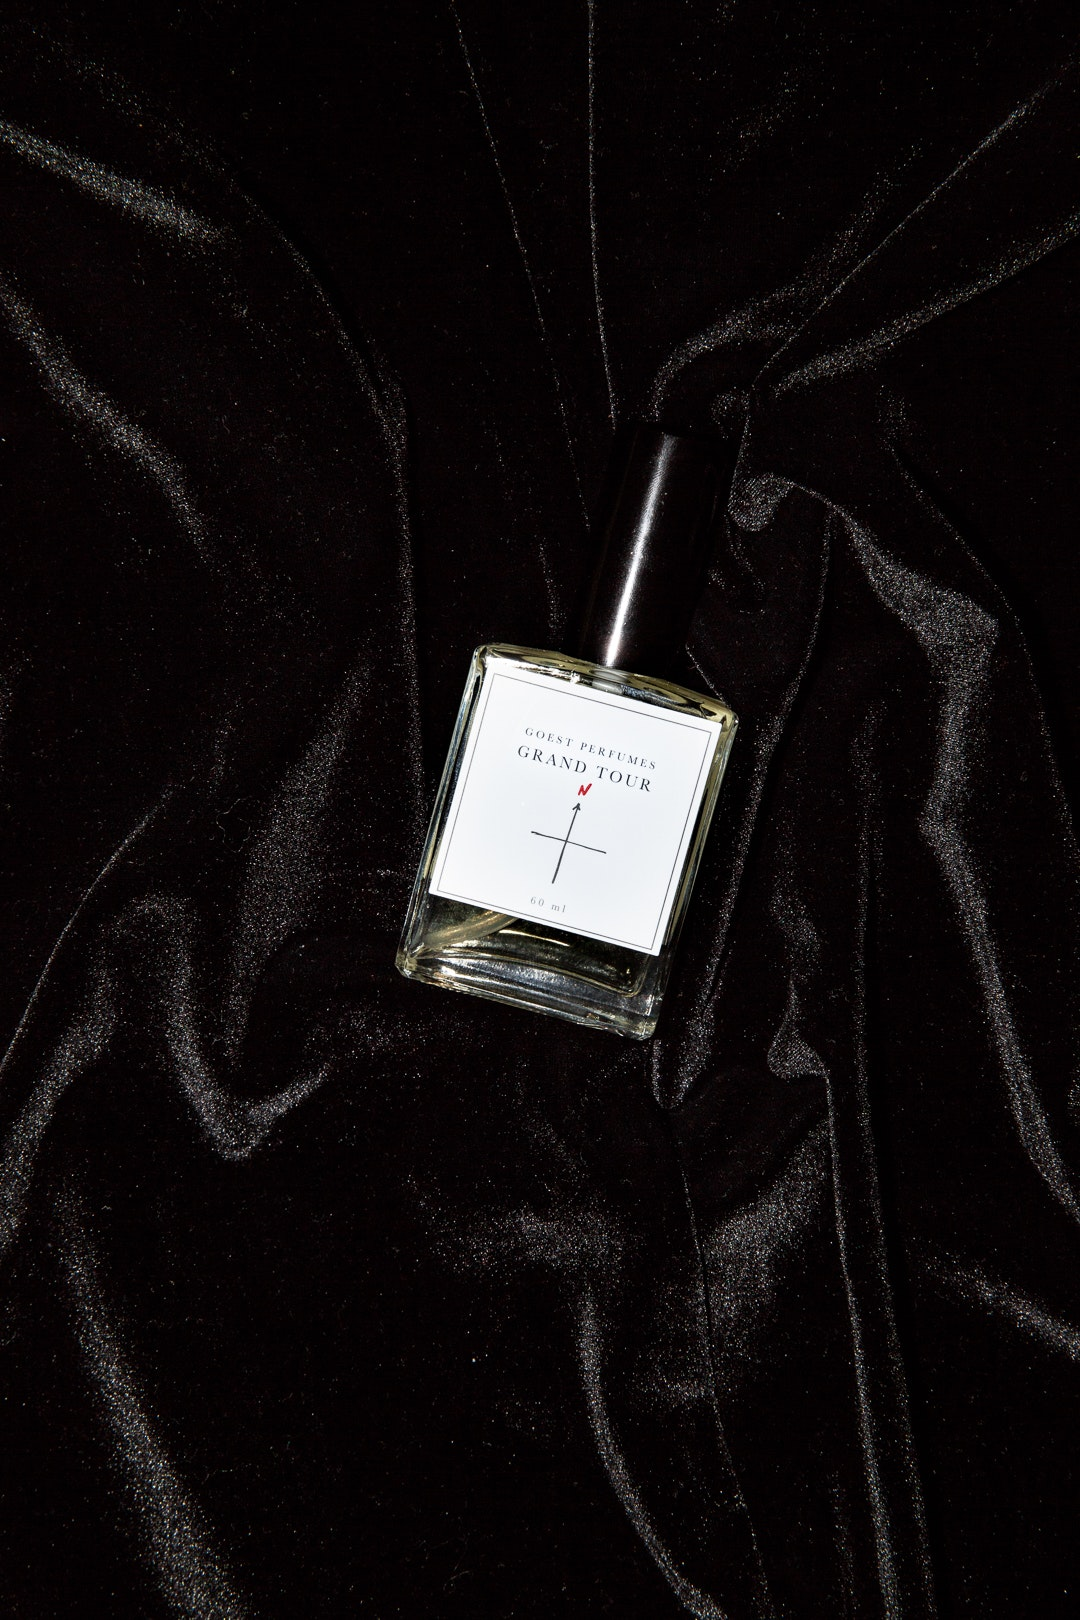 Goest Perfumes 0528